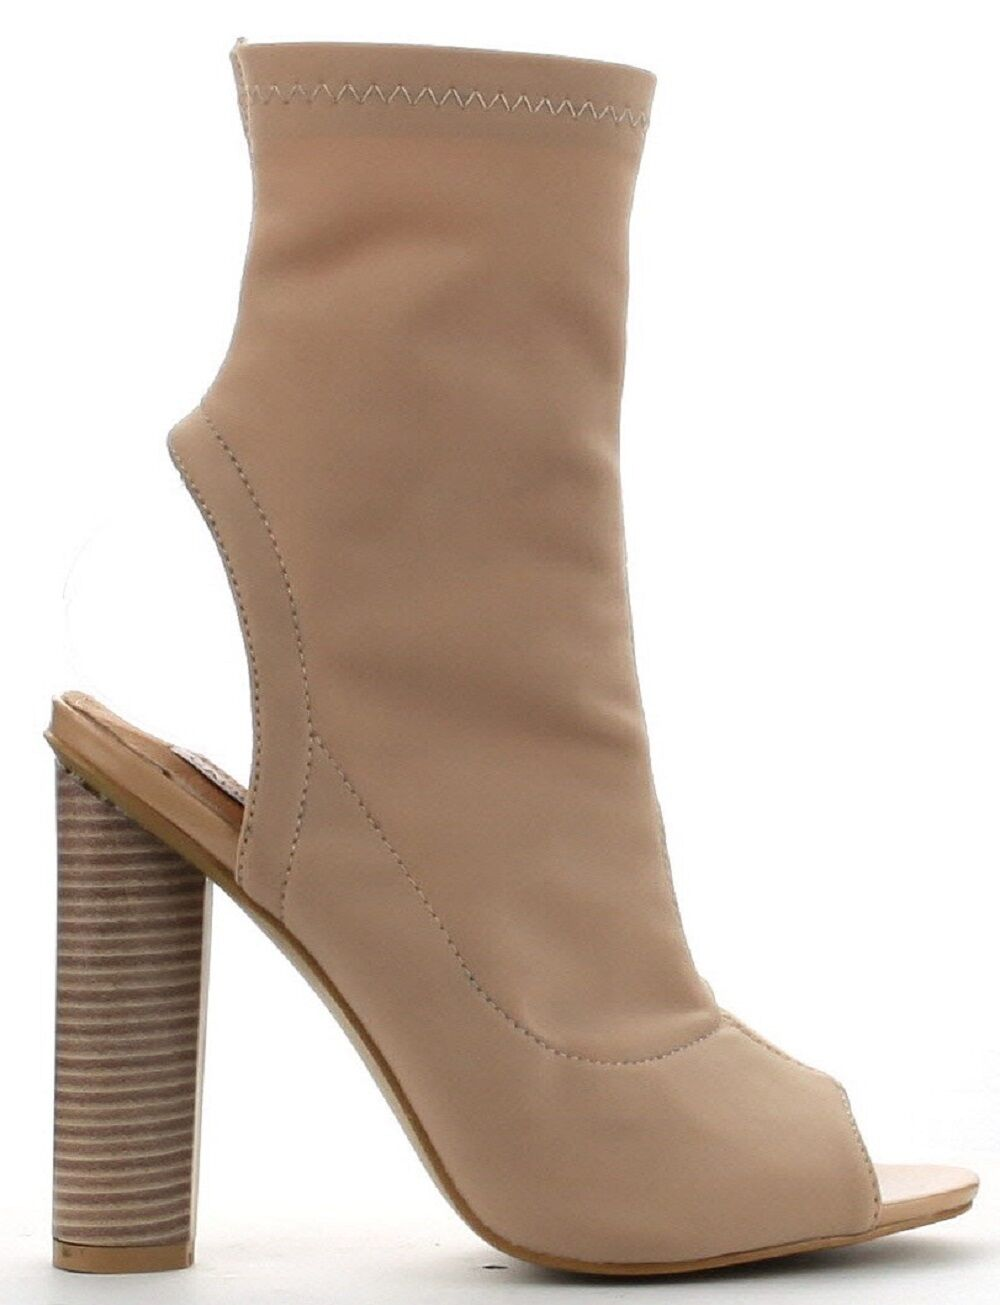 Connie-3 Open Peep Toe Lycra Elastic Pull On Ankle Bootie Block Heel Boot Nude